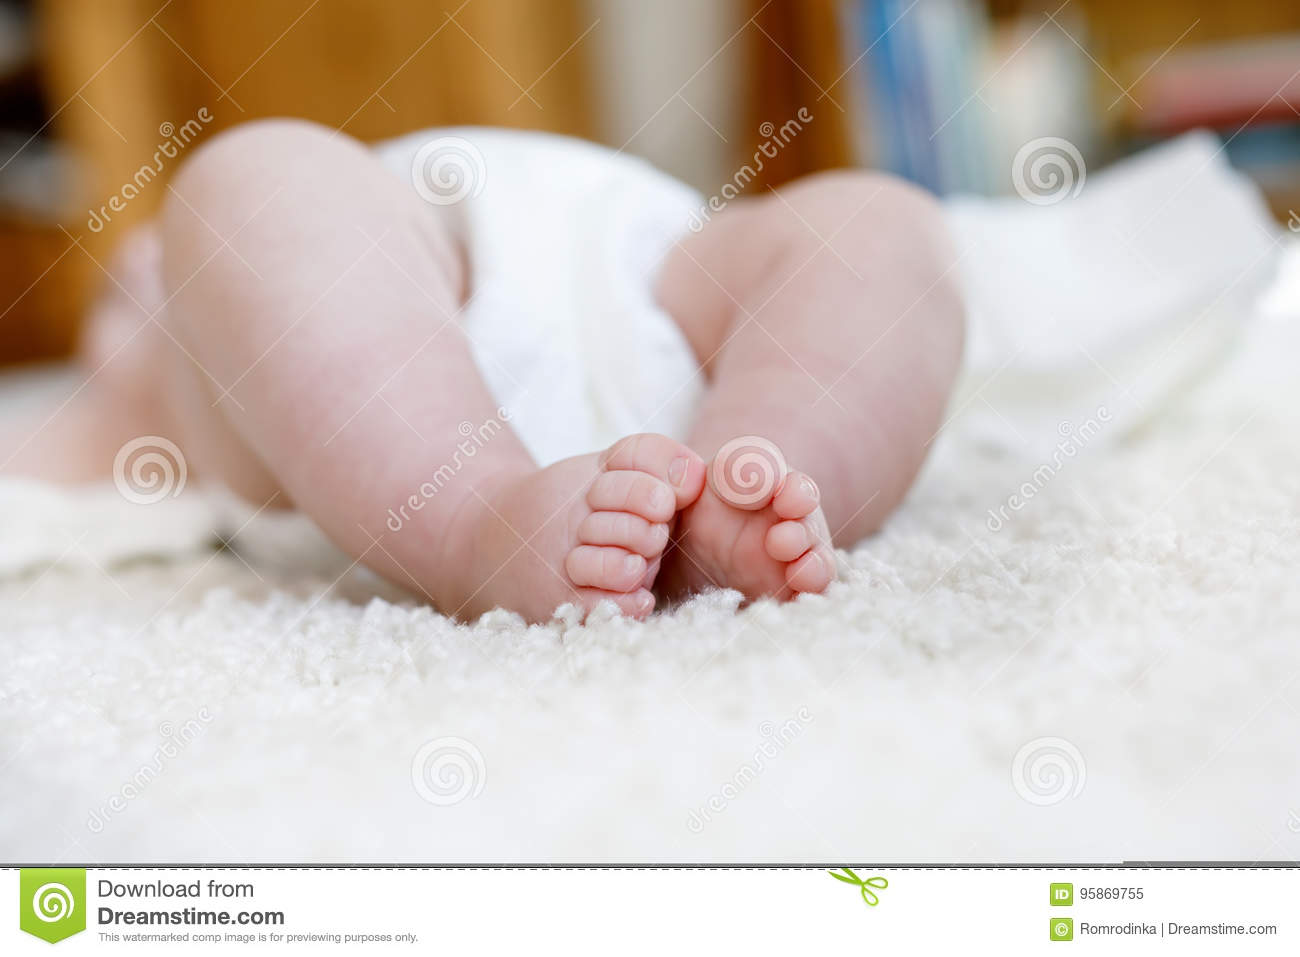 Feet and legs of newborn baby with diaper